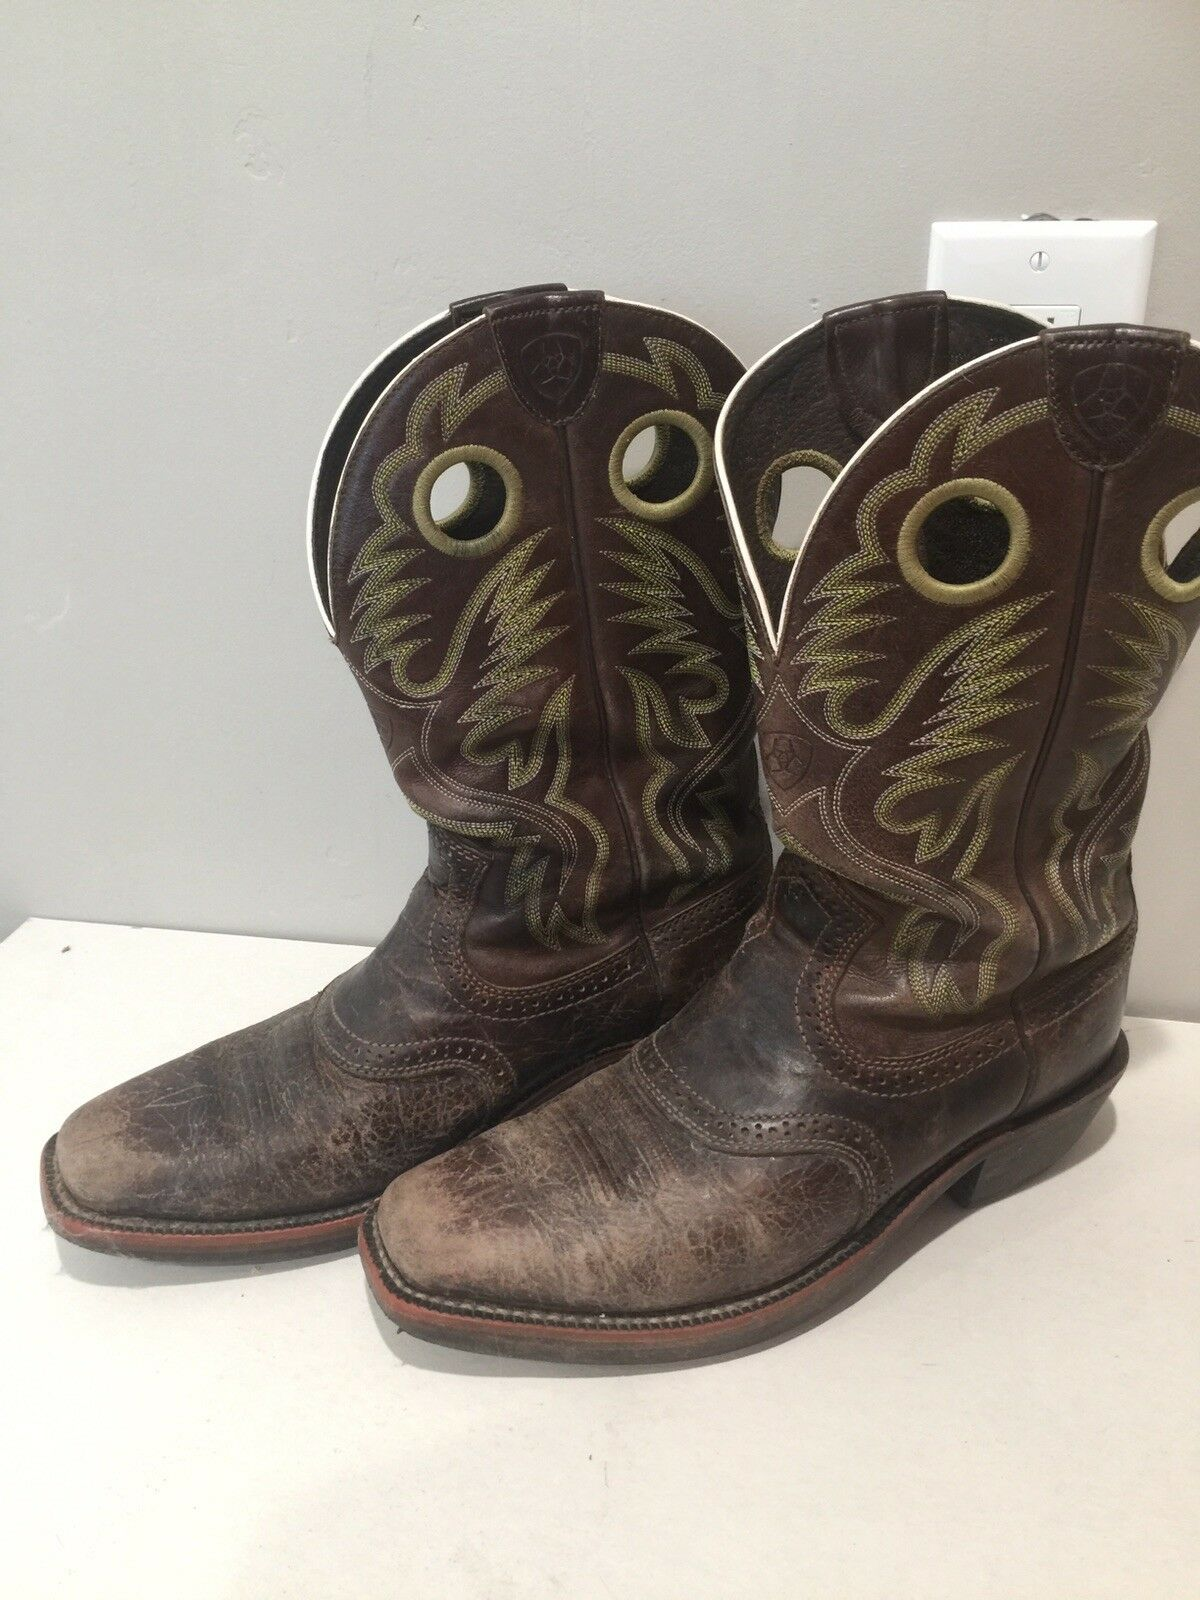 Ariat 10007850 Heritage Roughstock marron Square Toe Pull On Riding Cowboy bottes